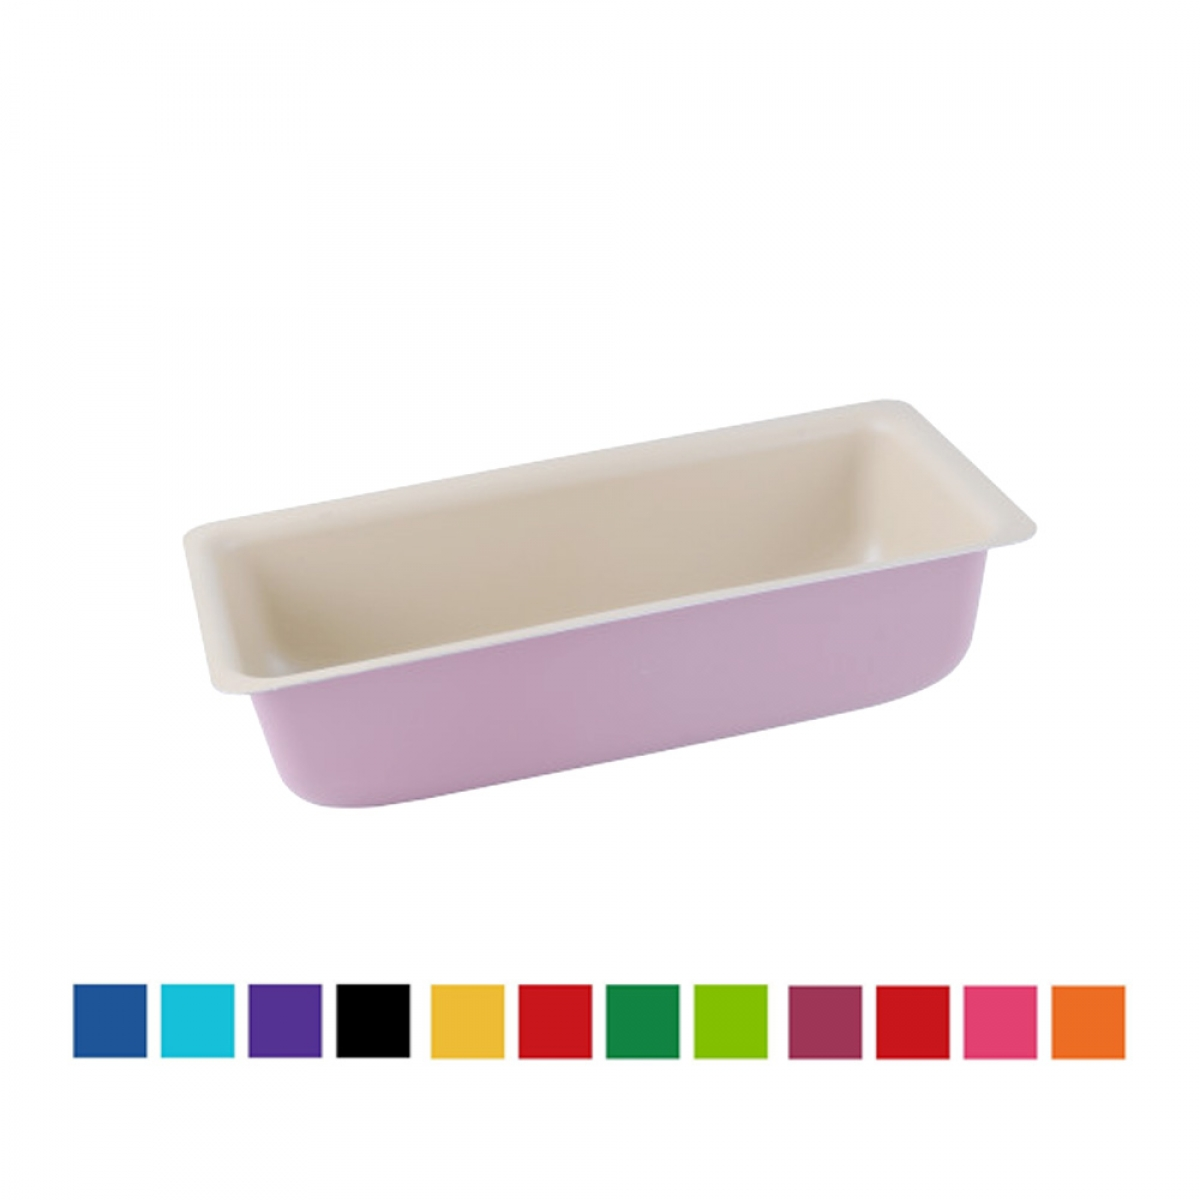 plum cake mould 193*94*50